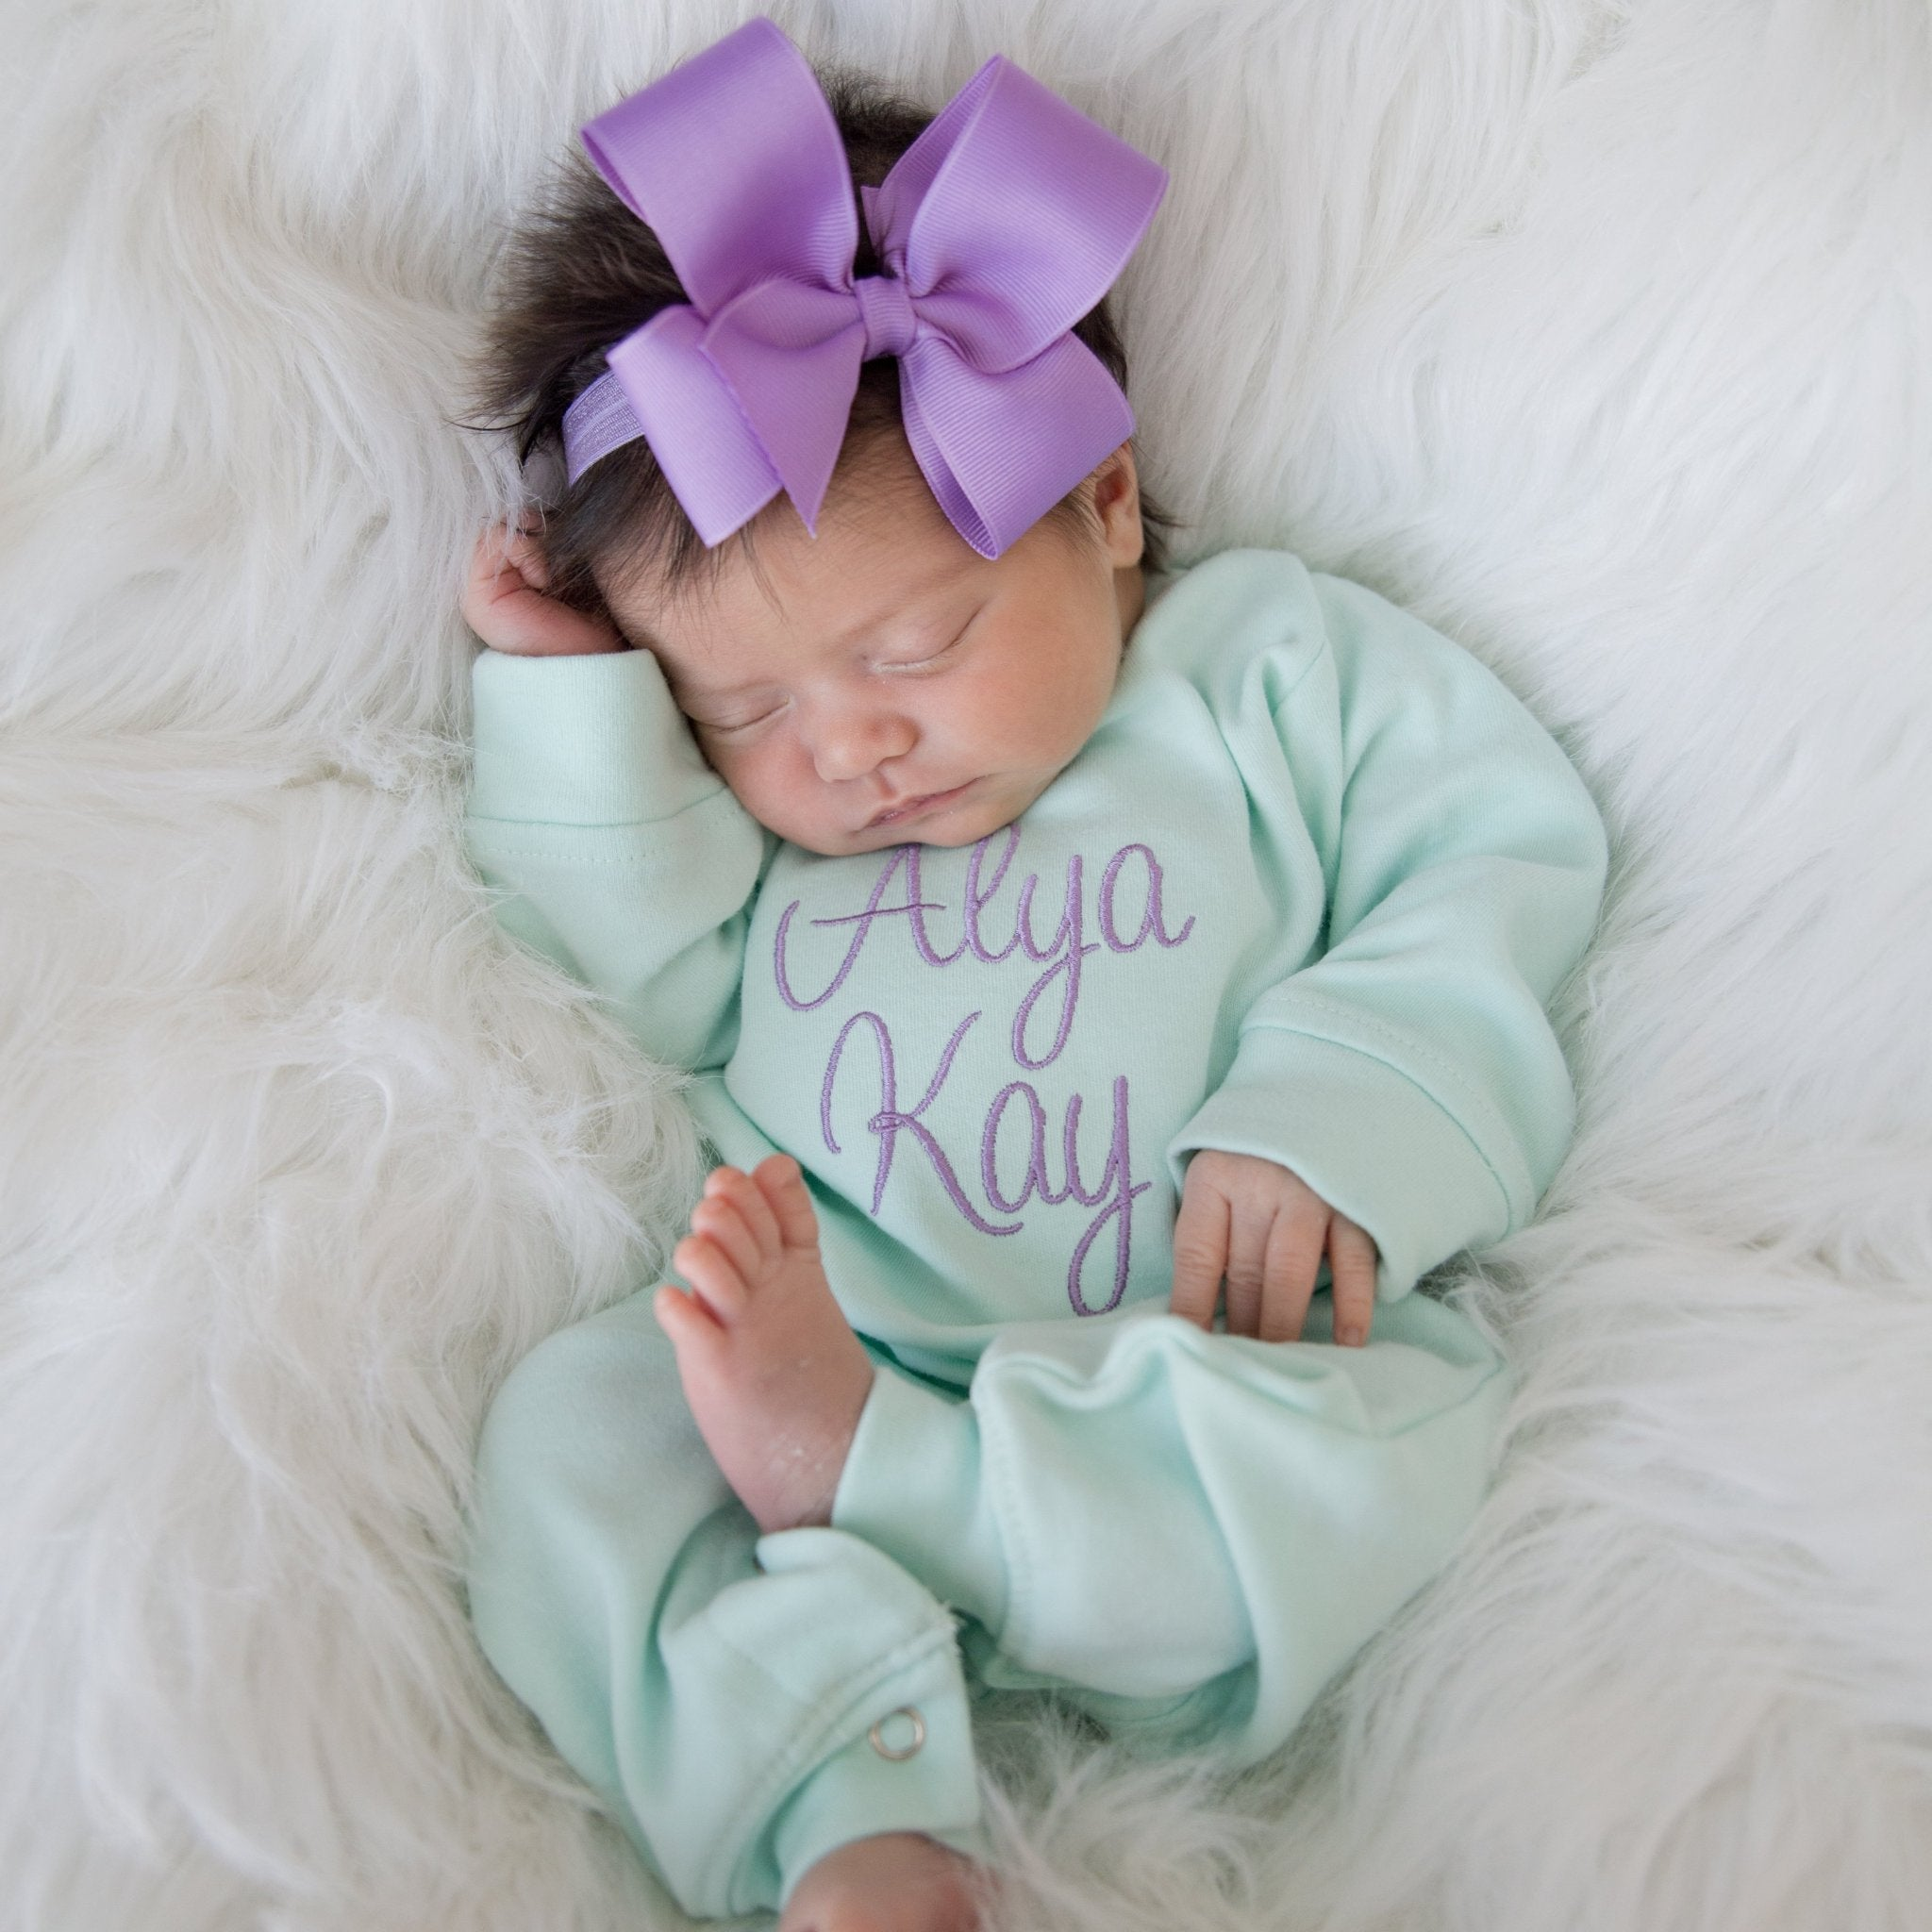 2a1f5a8450e28 Mint and Lilac Newborn Baby Girl Coming Home Outfit with Bow Headband